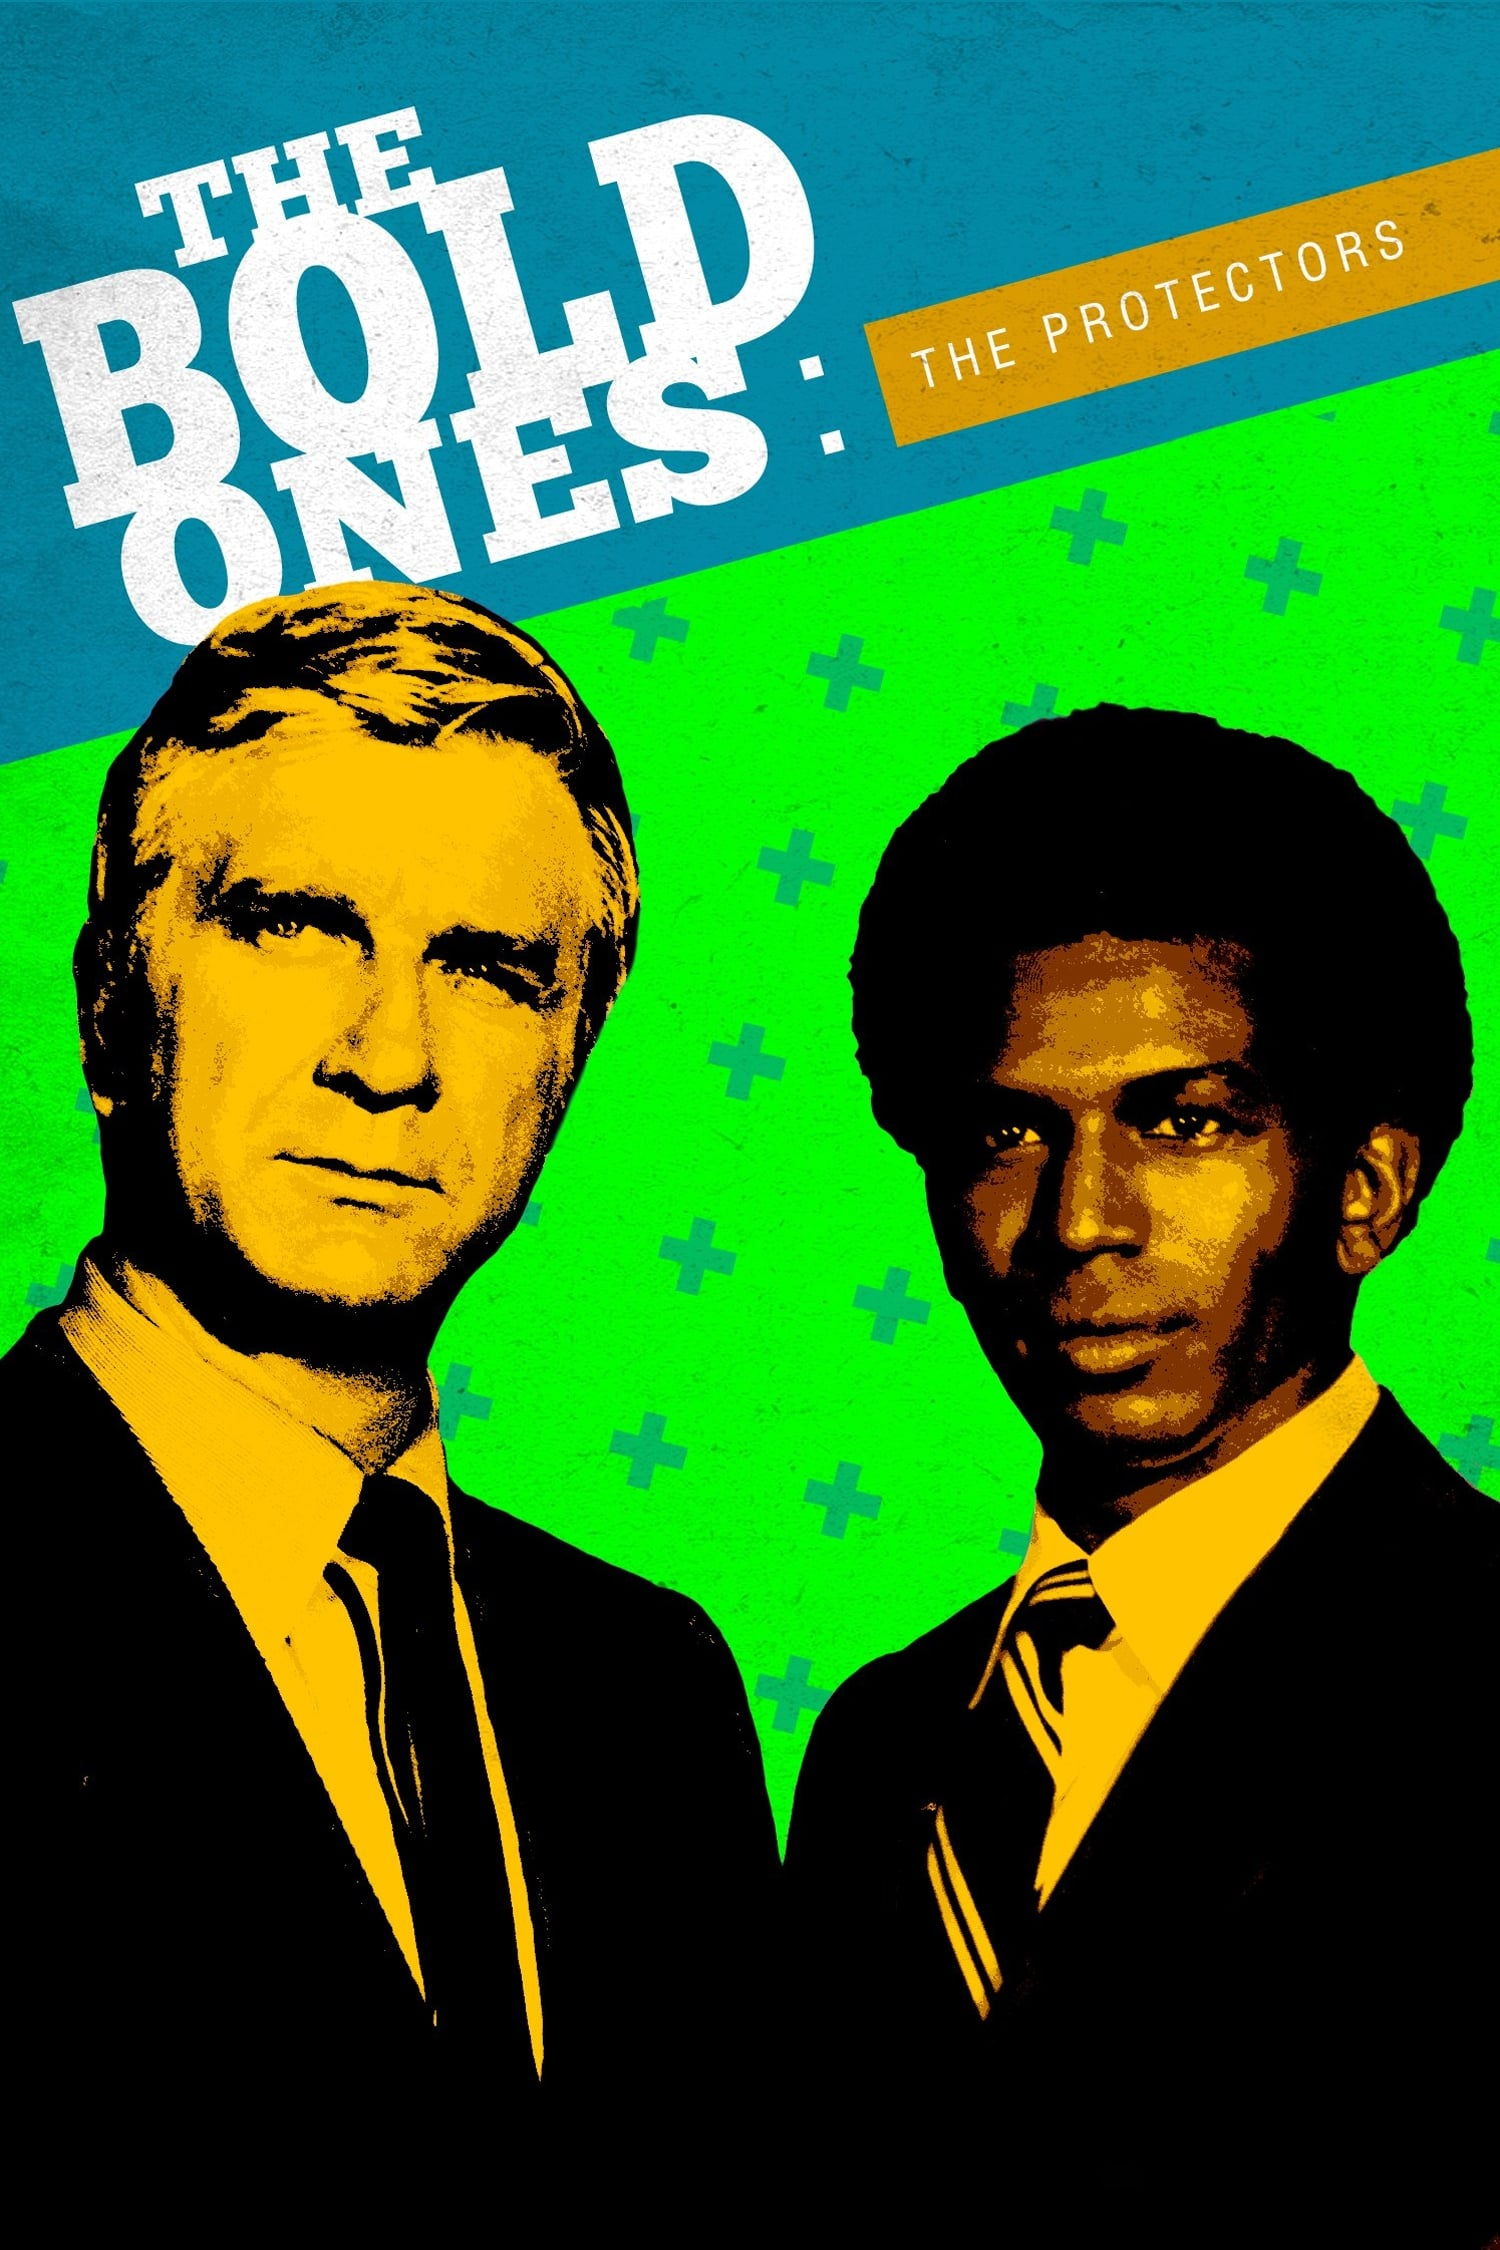 The Bold Ones: The Protectors (1969)